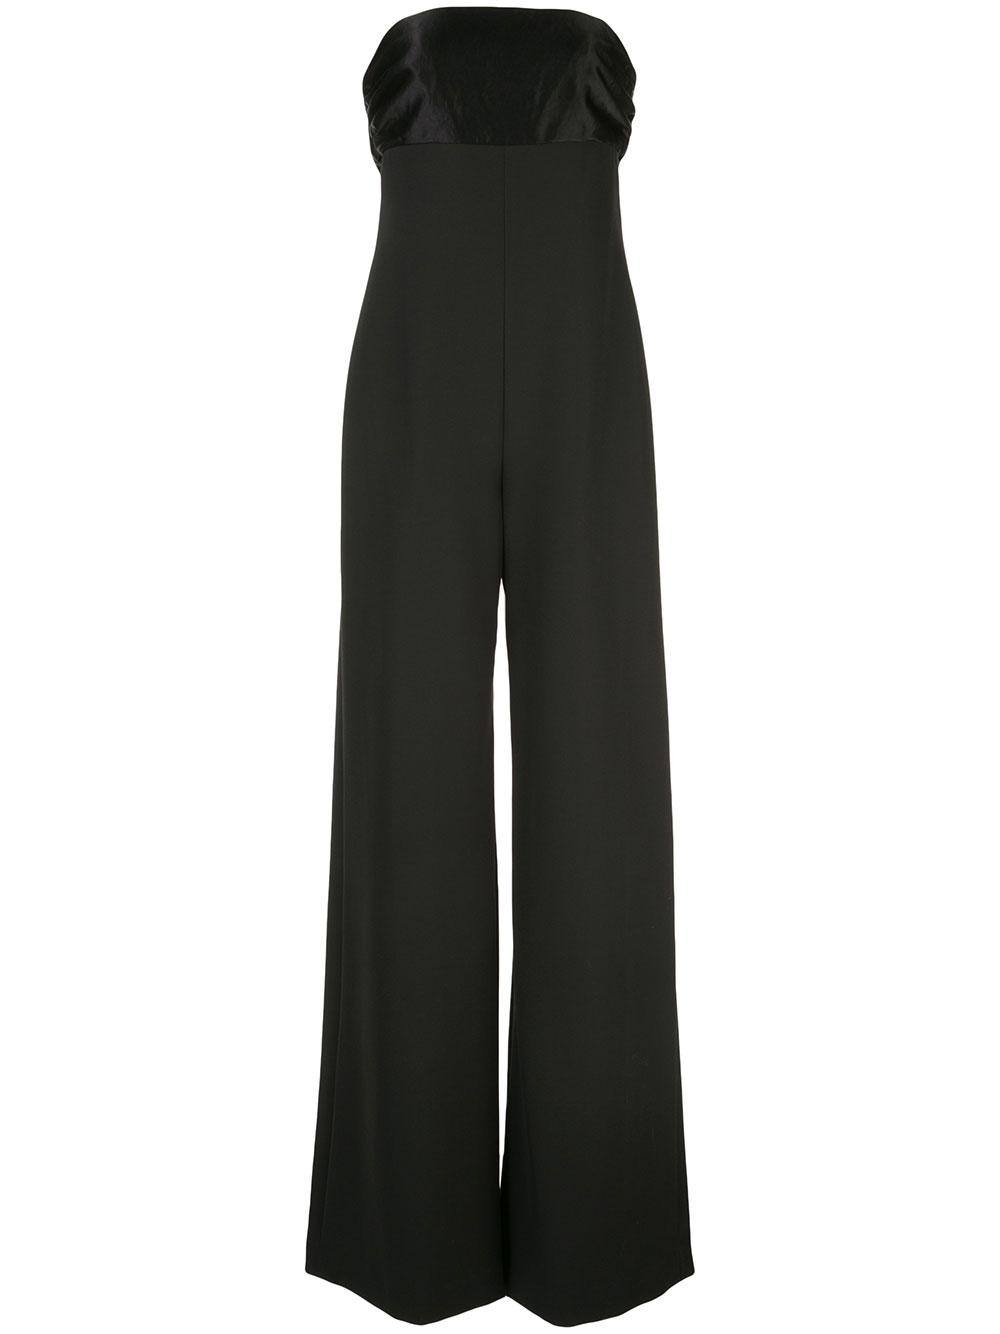 Cady Brooke Tie Back Jumpsuit